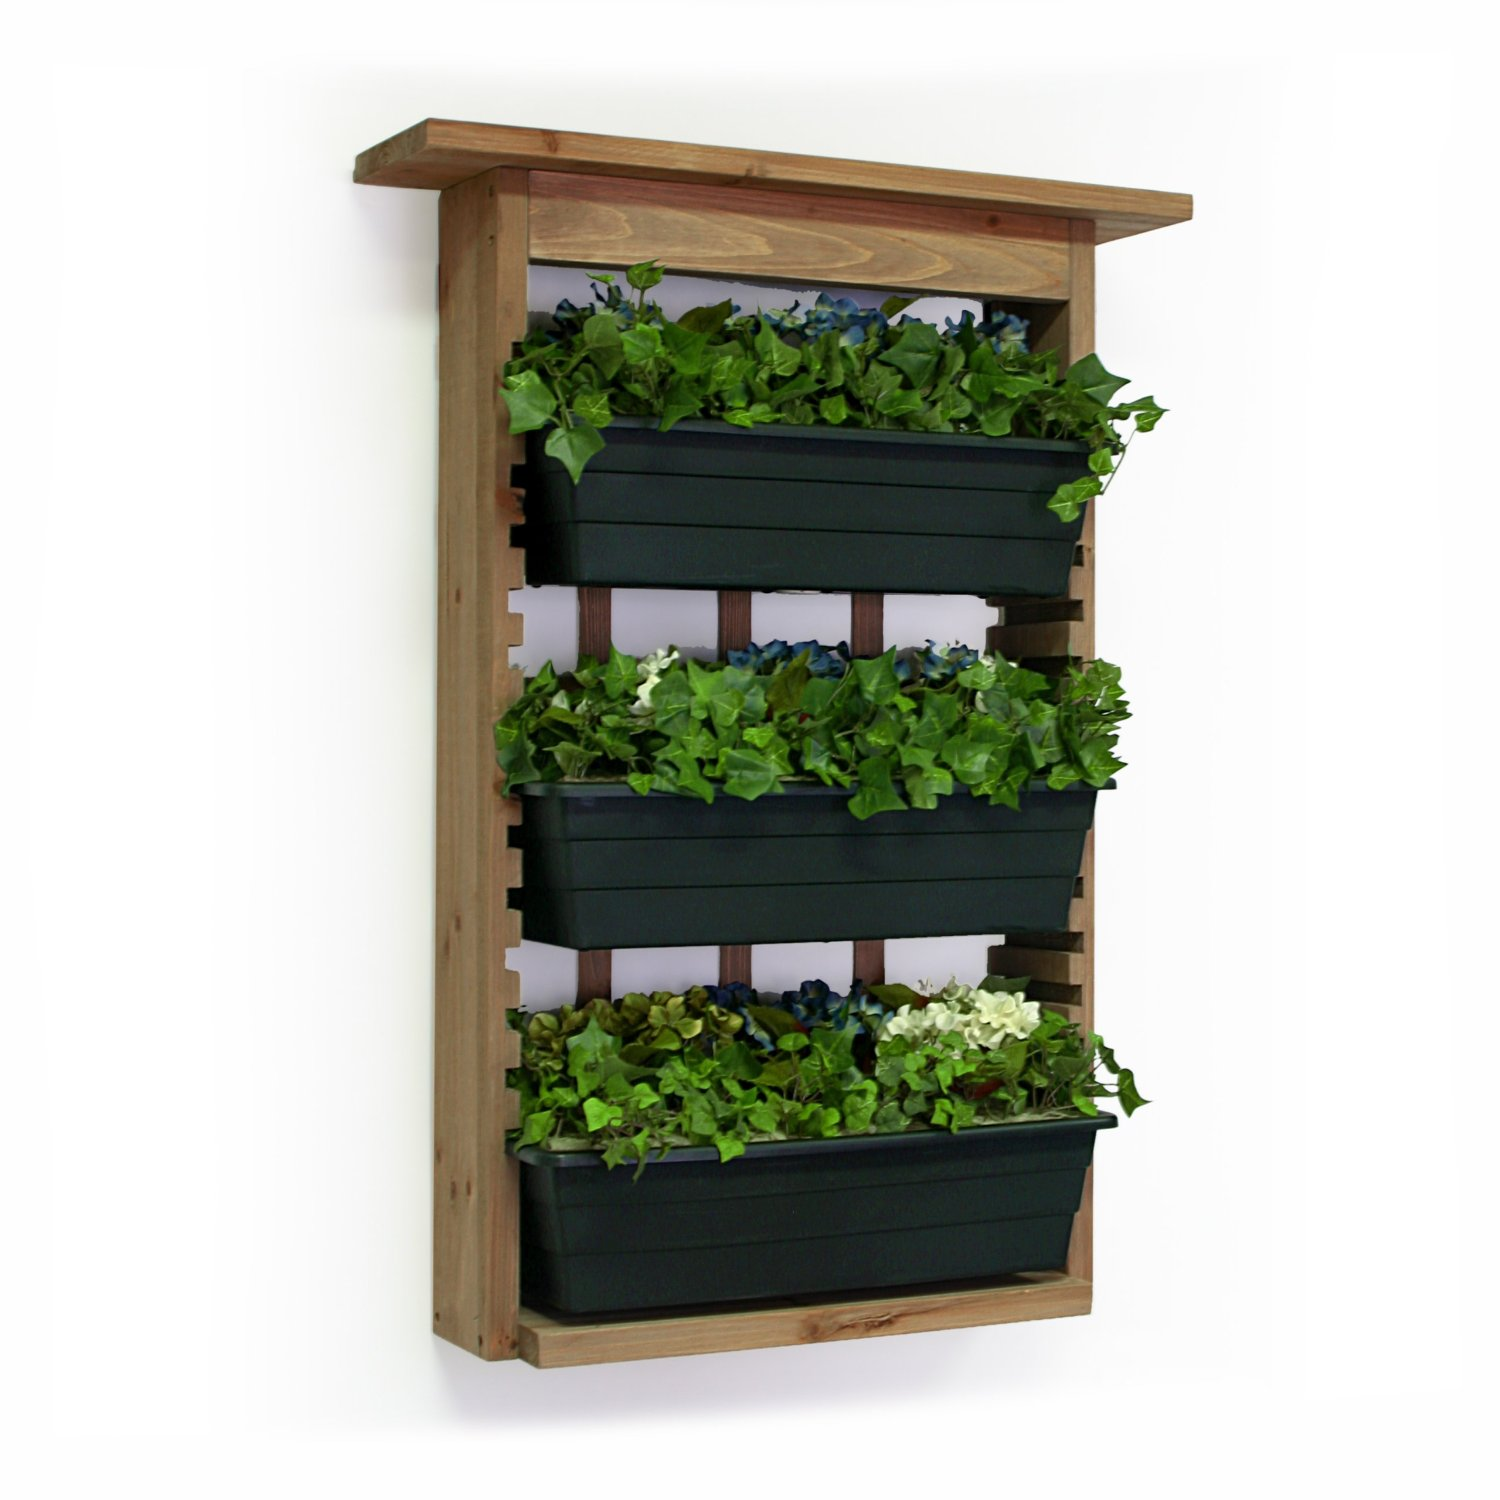 Vertical Gardens with Slide Out Planters